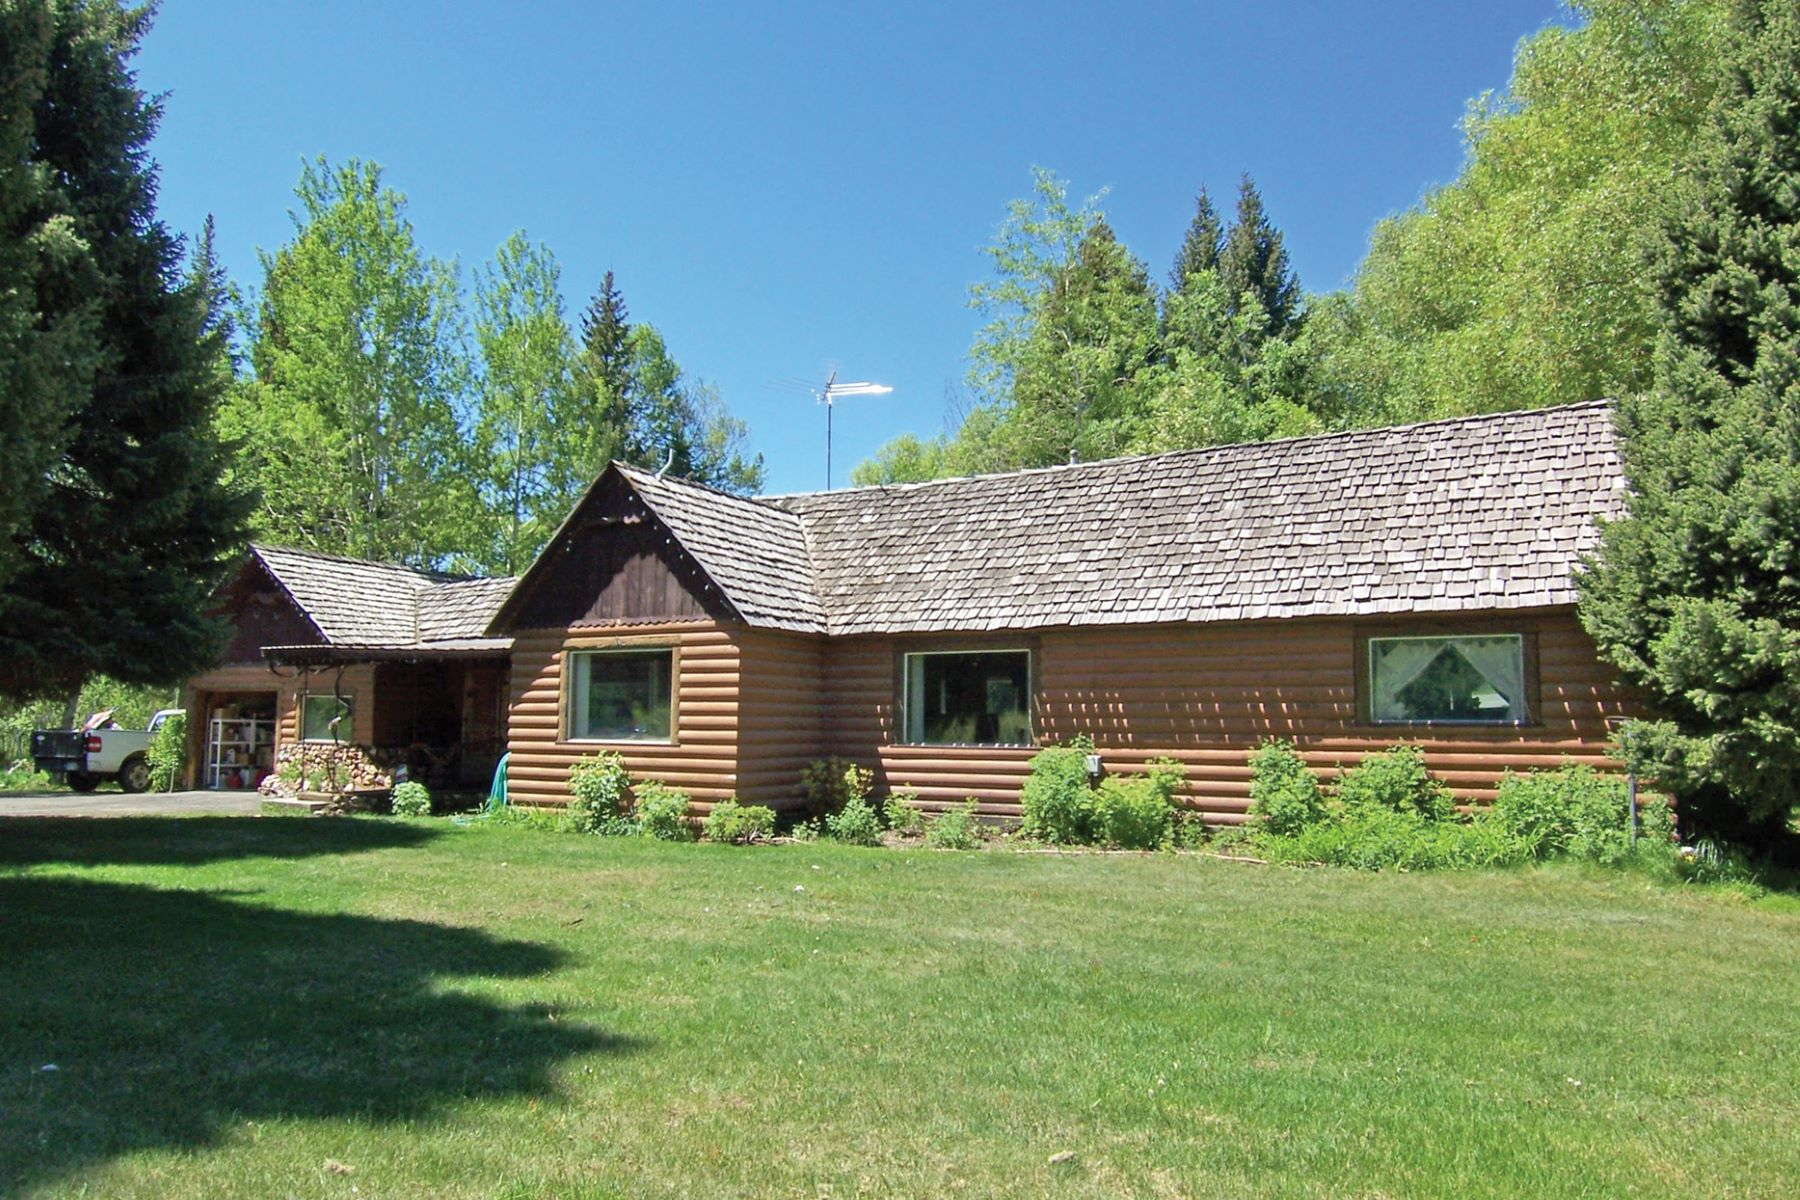 Maison unifamiliale pour l Vente à 2 Homes on 11 Acres on Driggs Main St. 552 South Hwy 33 (Main Street) Driggs, Idaho, 83422 Jackson Hole, États-Unis